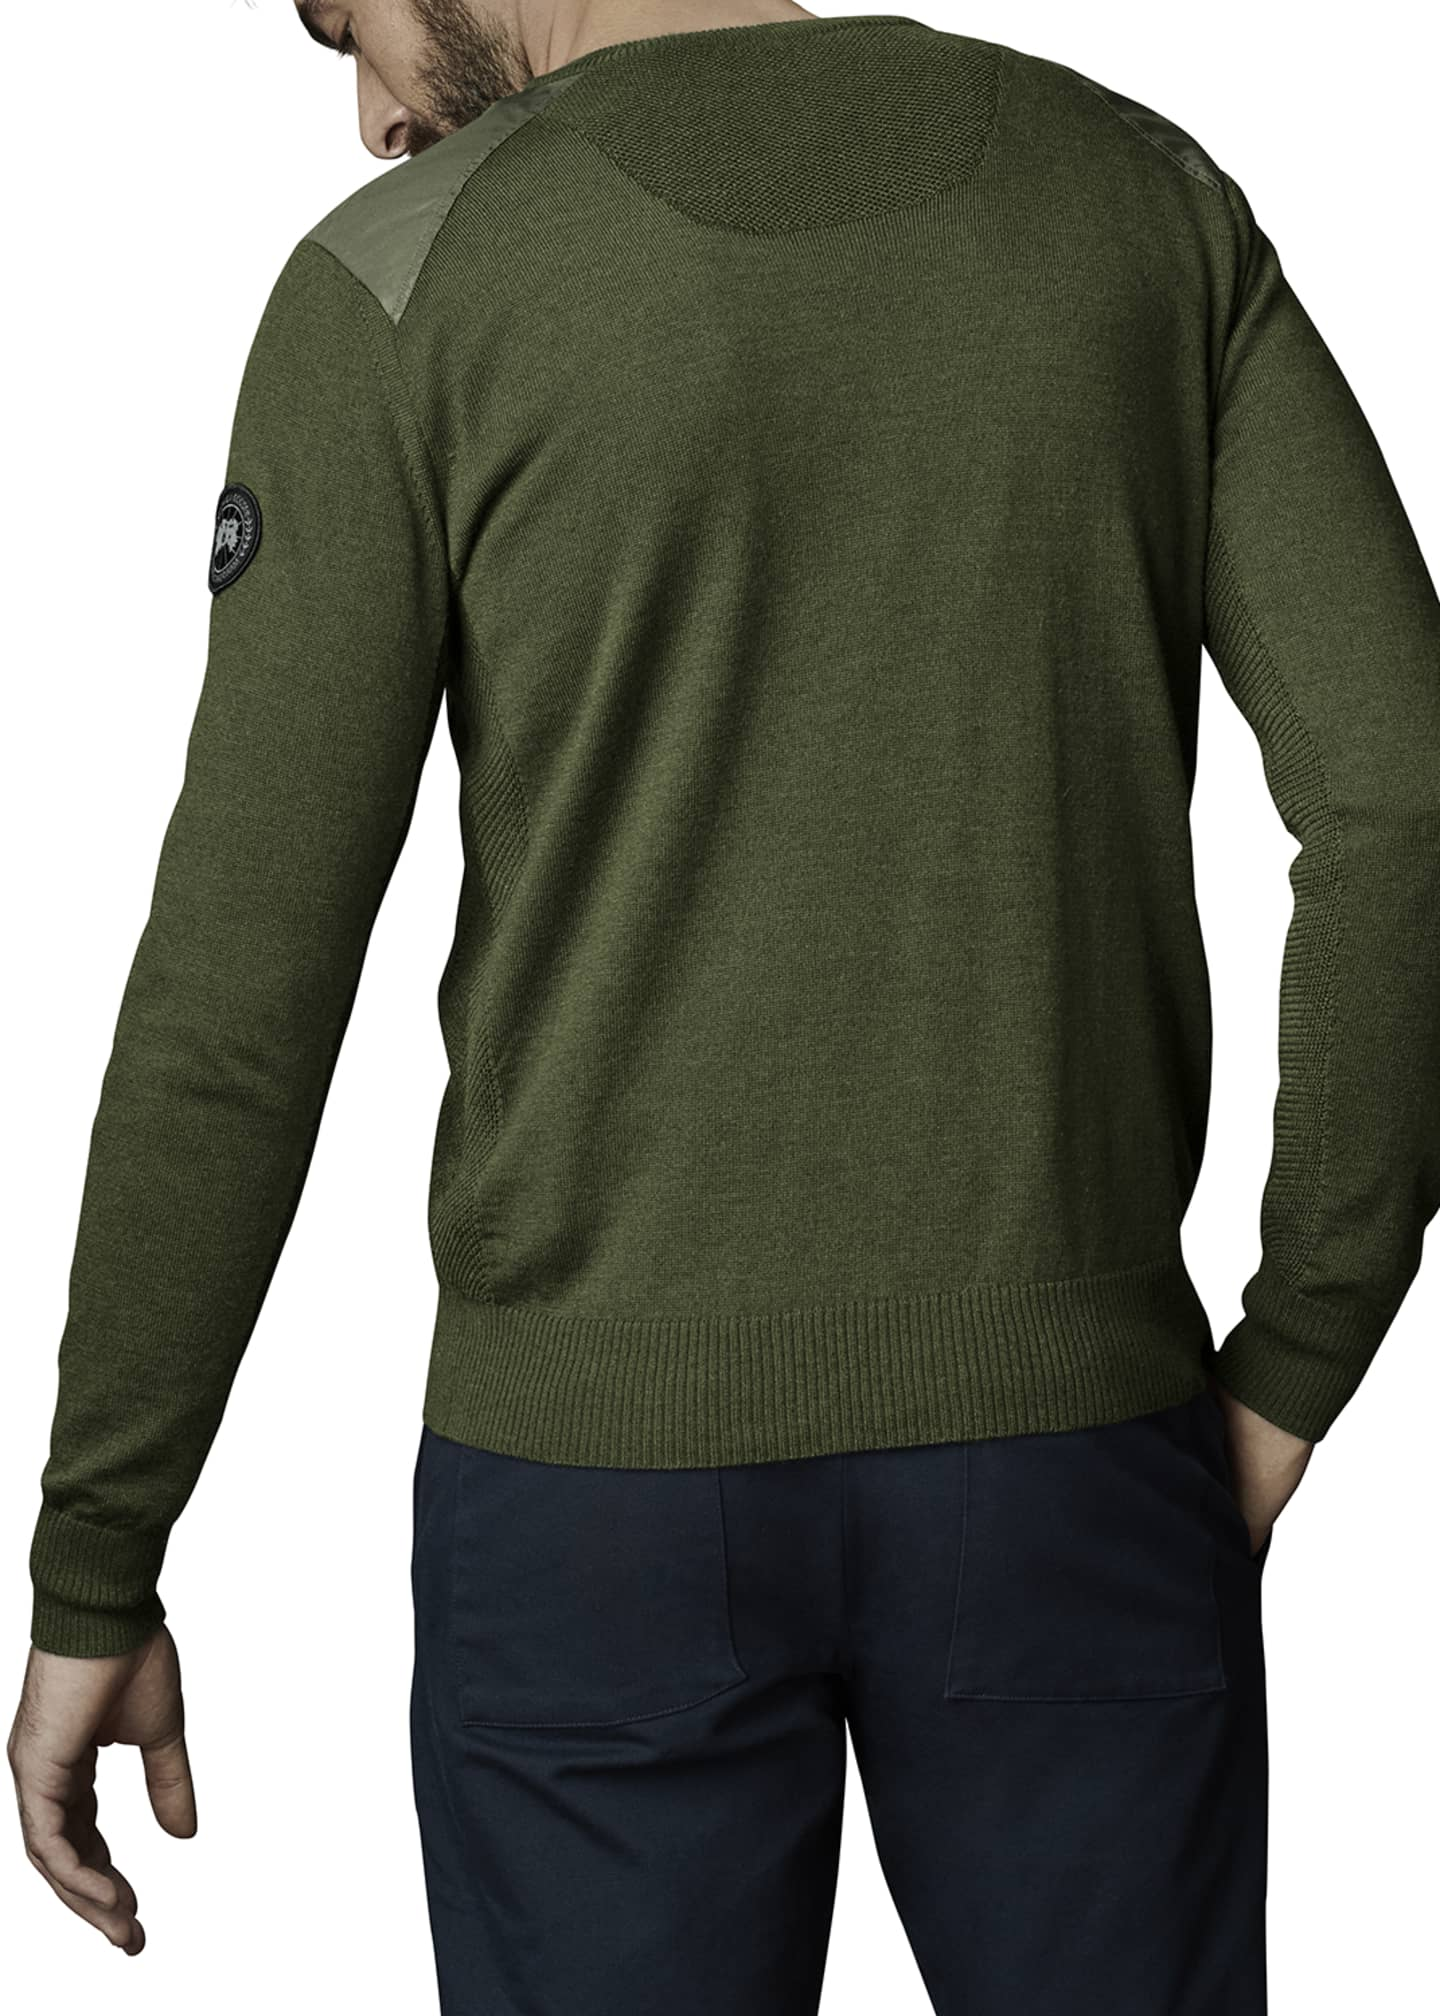 Image 2 of 2: McLeod V-Neck Sweater w/ Nylon Shoulders